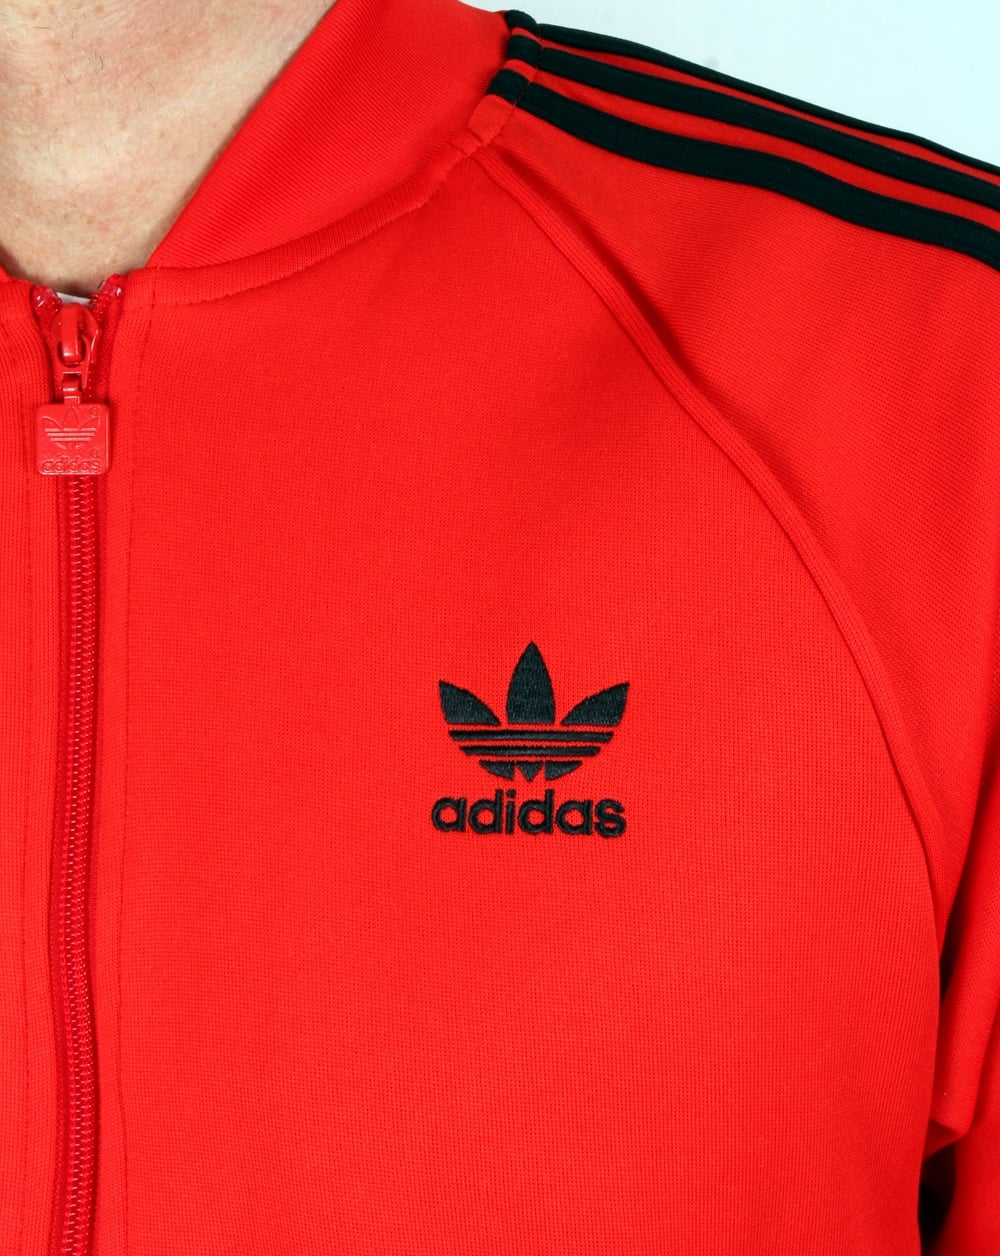 adidas originals superstar track top core red men 39 s jacket. Black Bedroom Furniture Sets. Home Design Ideas